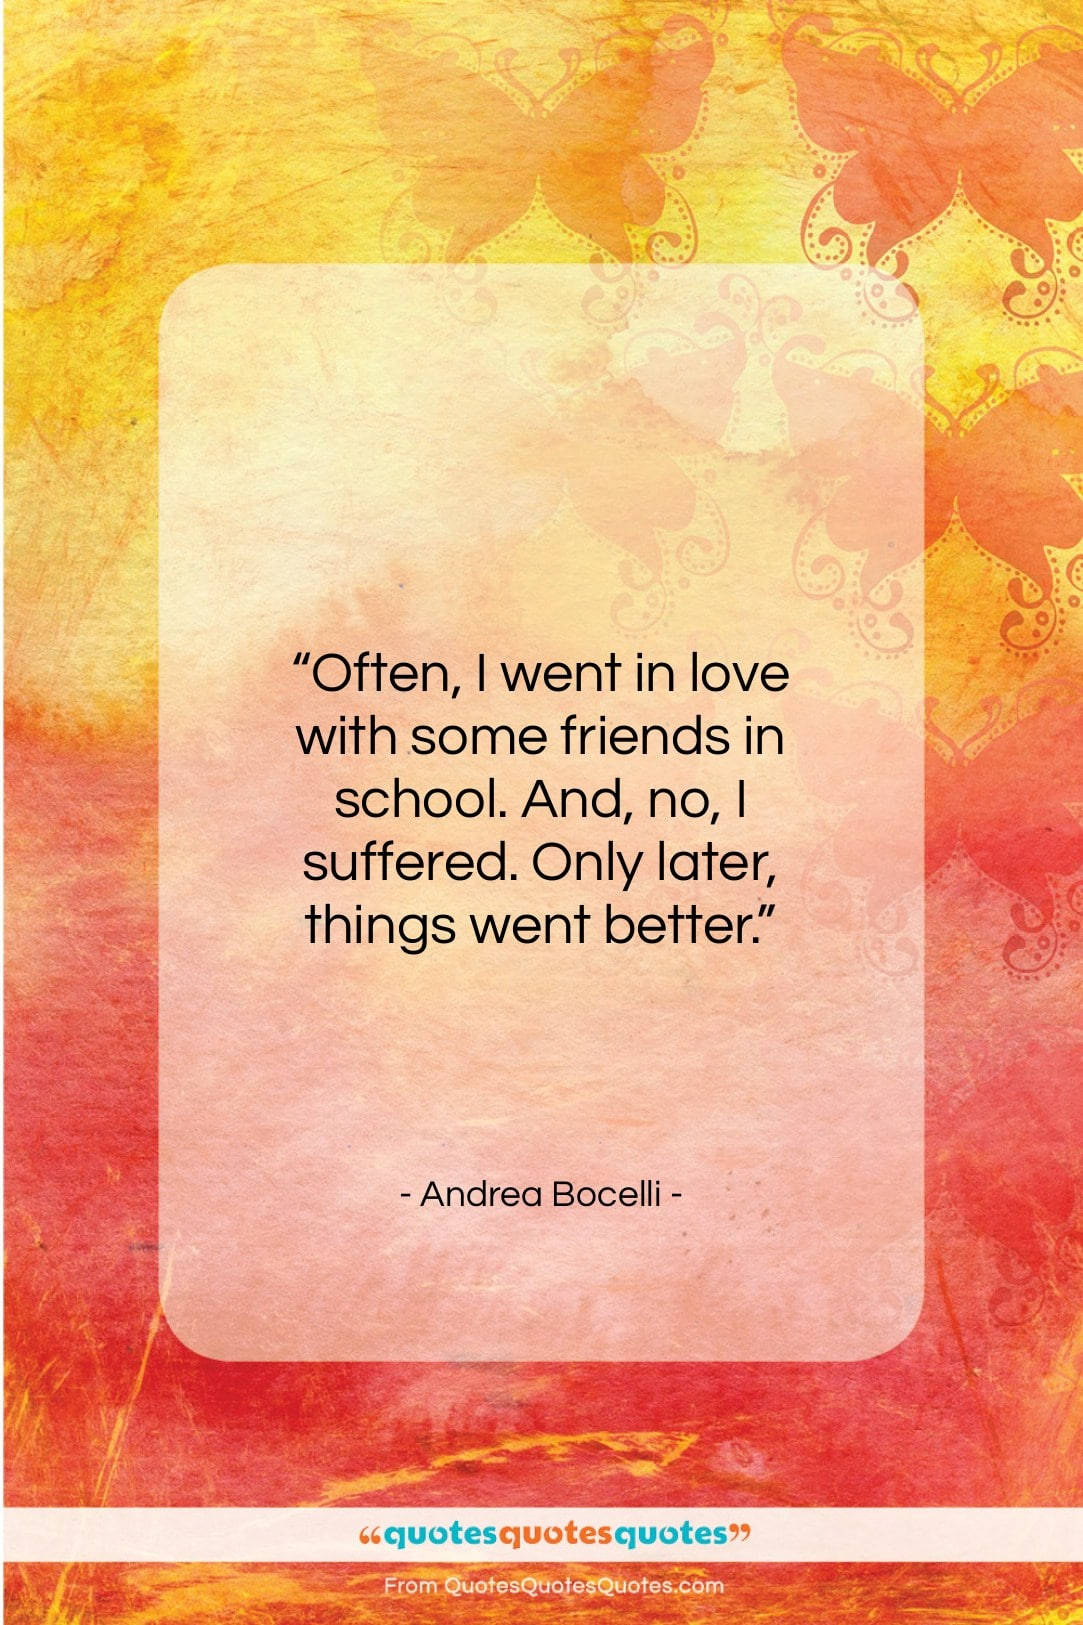 """Andrea Bocelli quote: """"Often, I went in love with some…""""- at QuotesQuotesQuotes.com"""